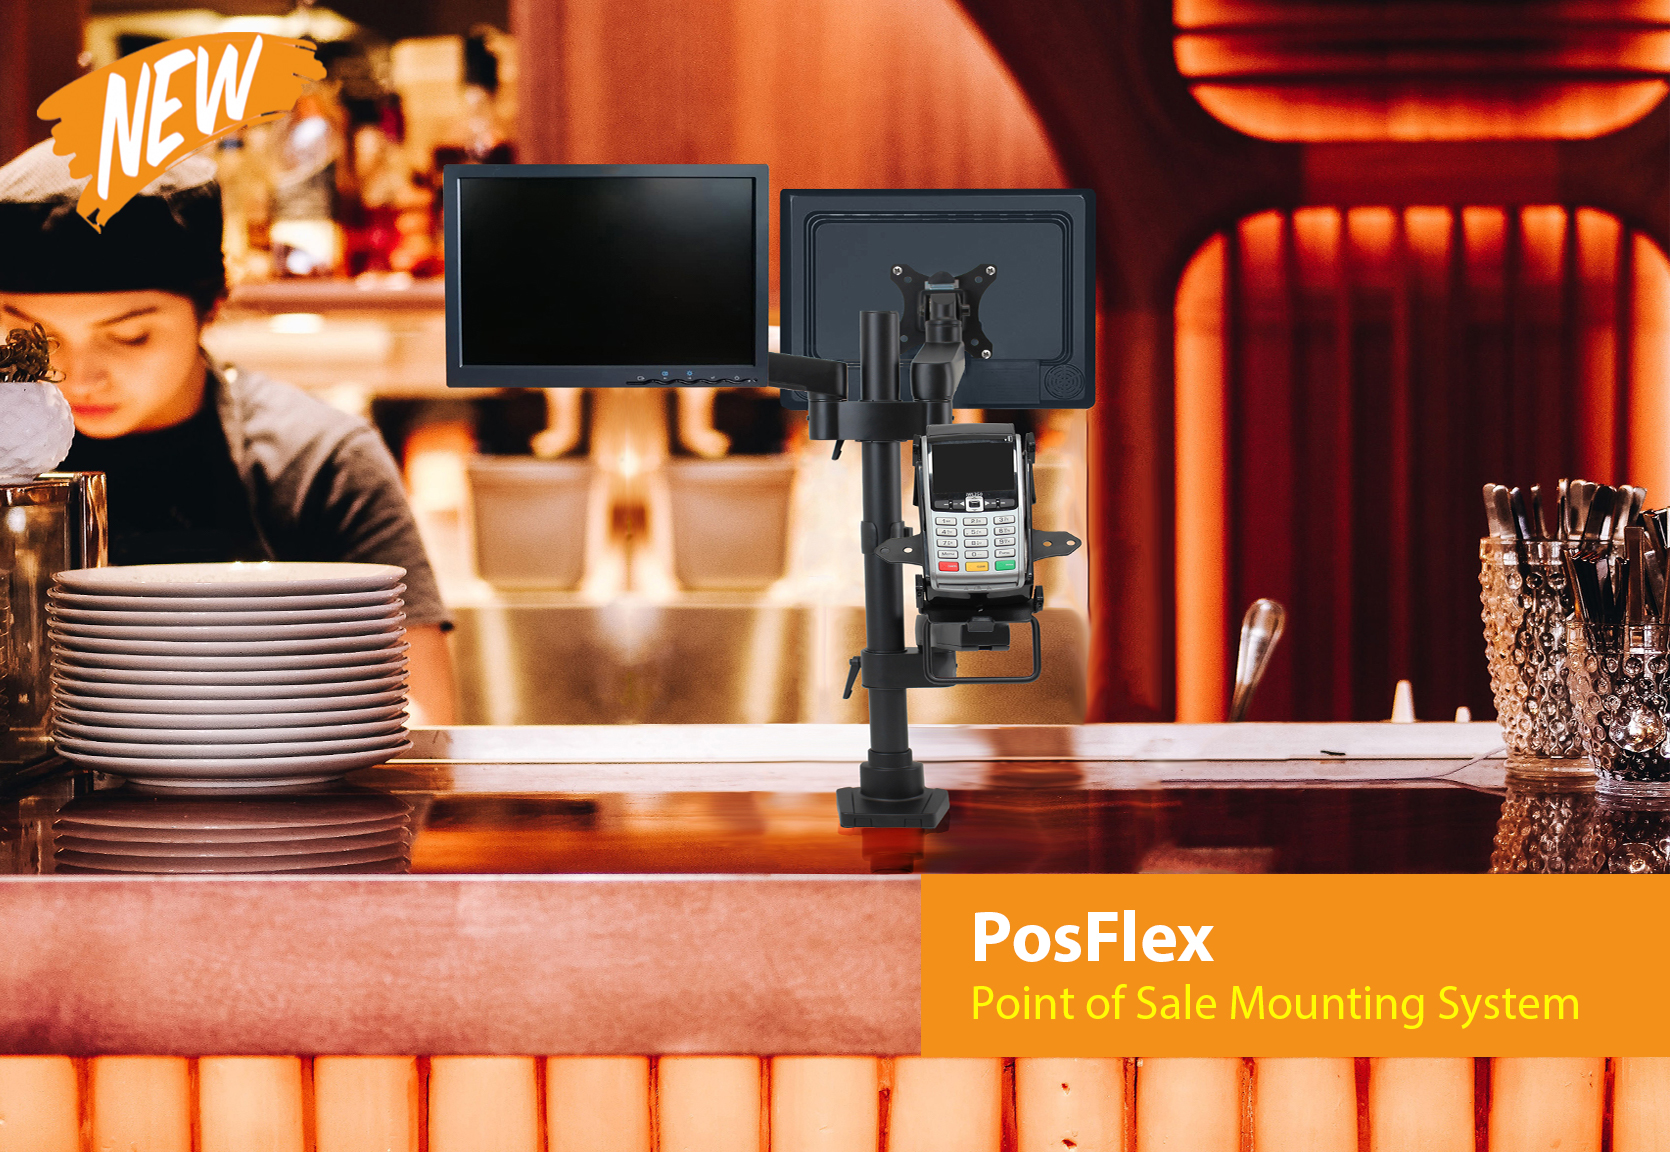 You are currently viewing New PosFlex POS Mount